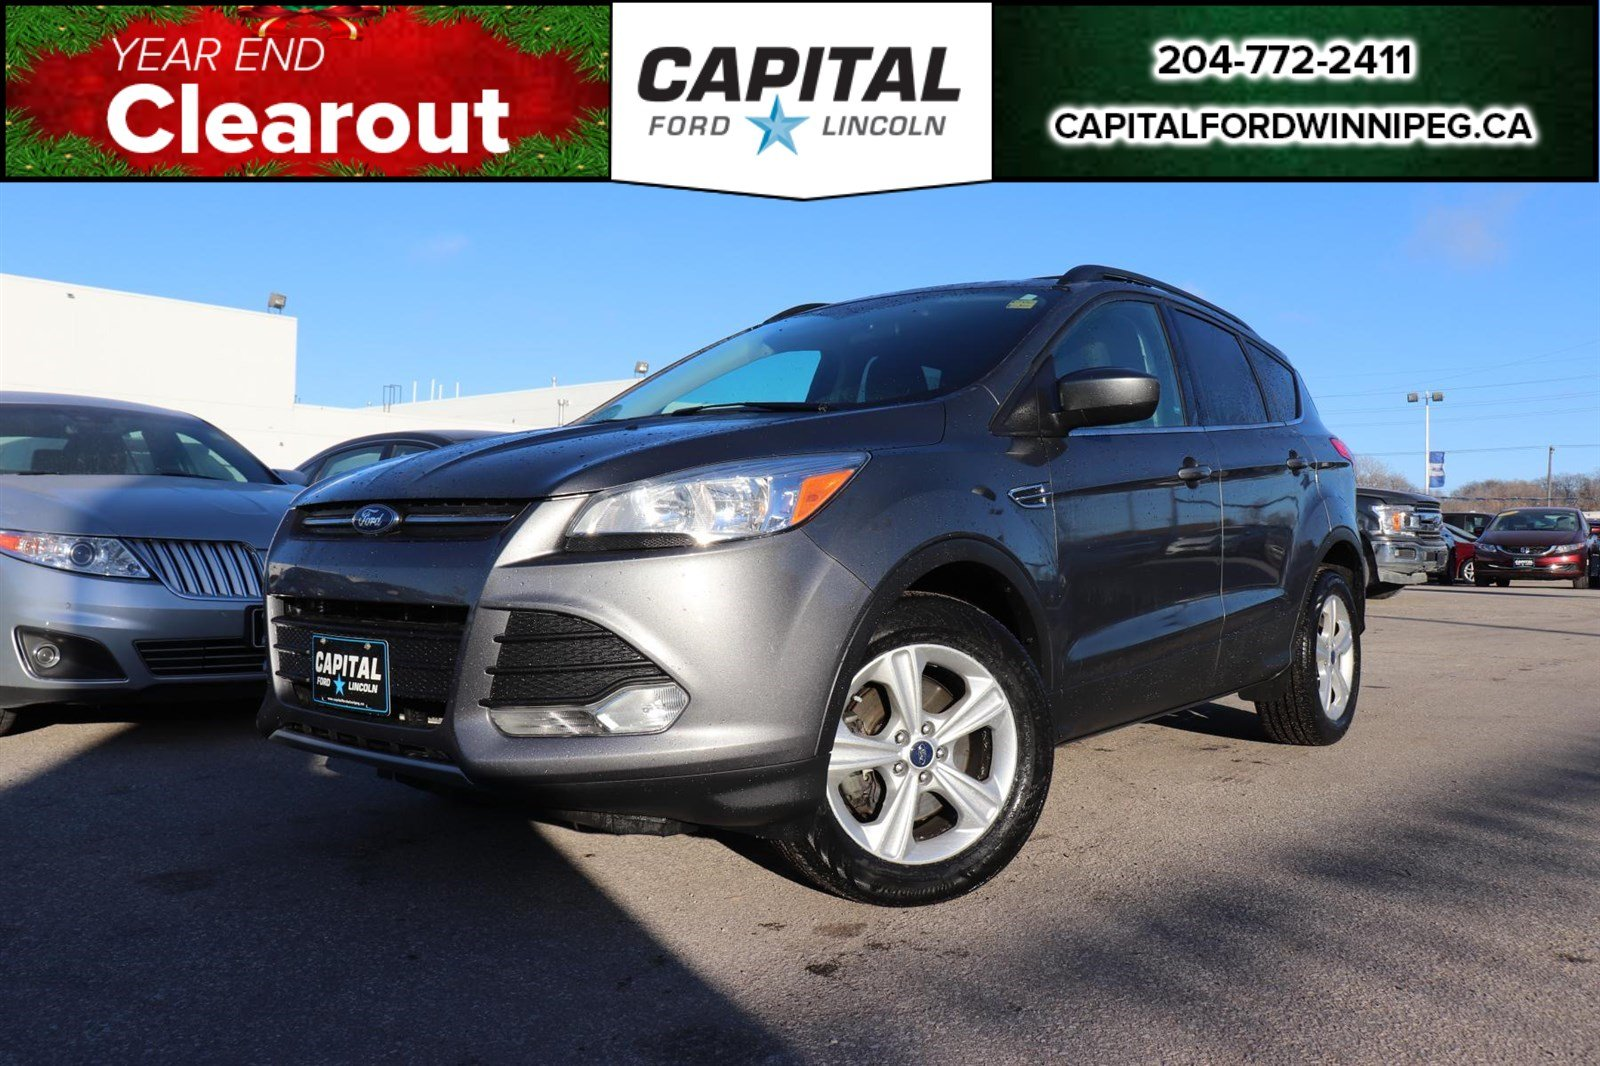 Pre owned 2013 ford escape se 4wd local one owner trade heated seats pwr liftgate